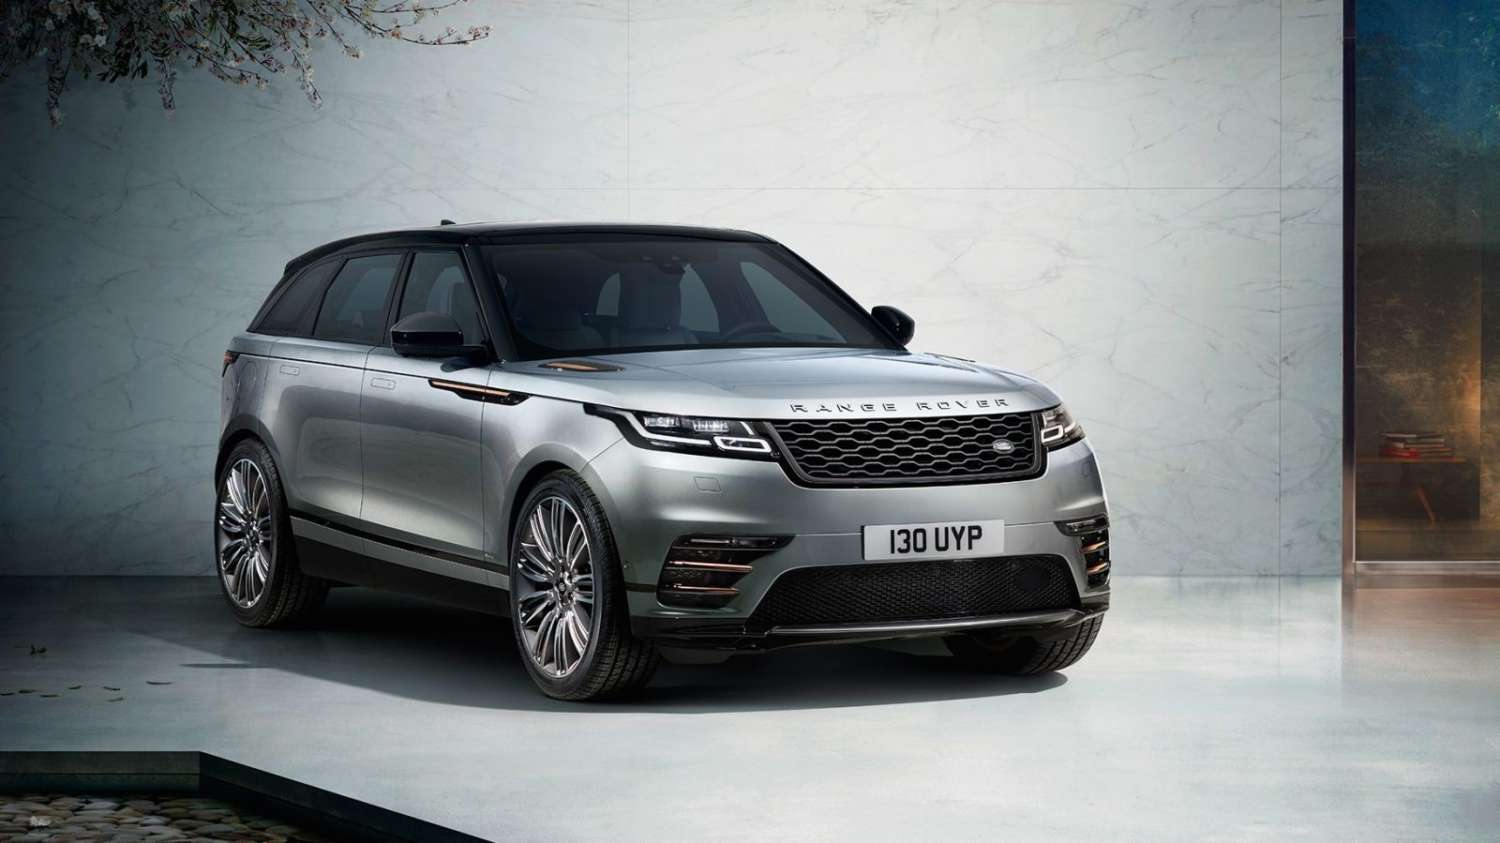 range rover velar india launch in 2017 motoroids. Black Bedroom Furniture Sets. Home Design Ideas